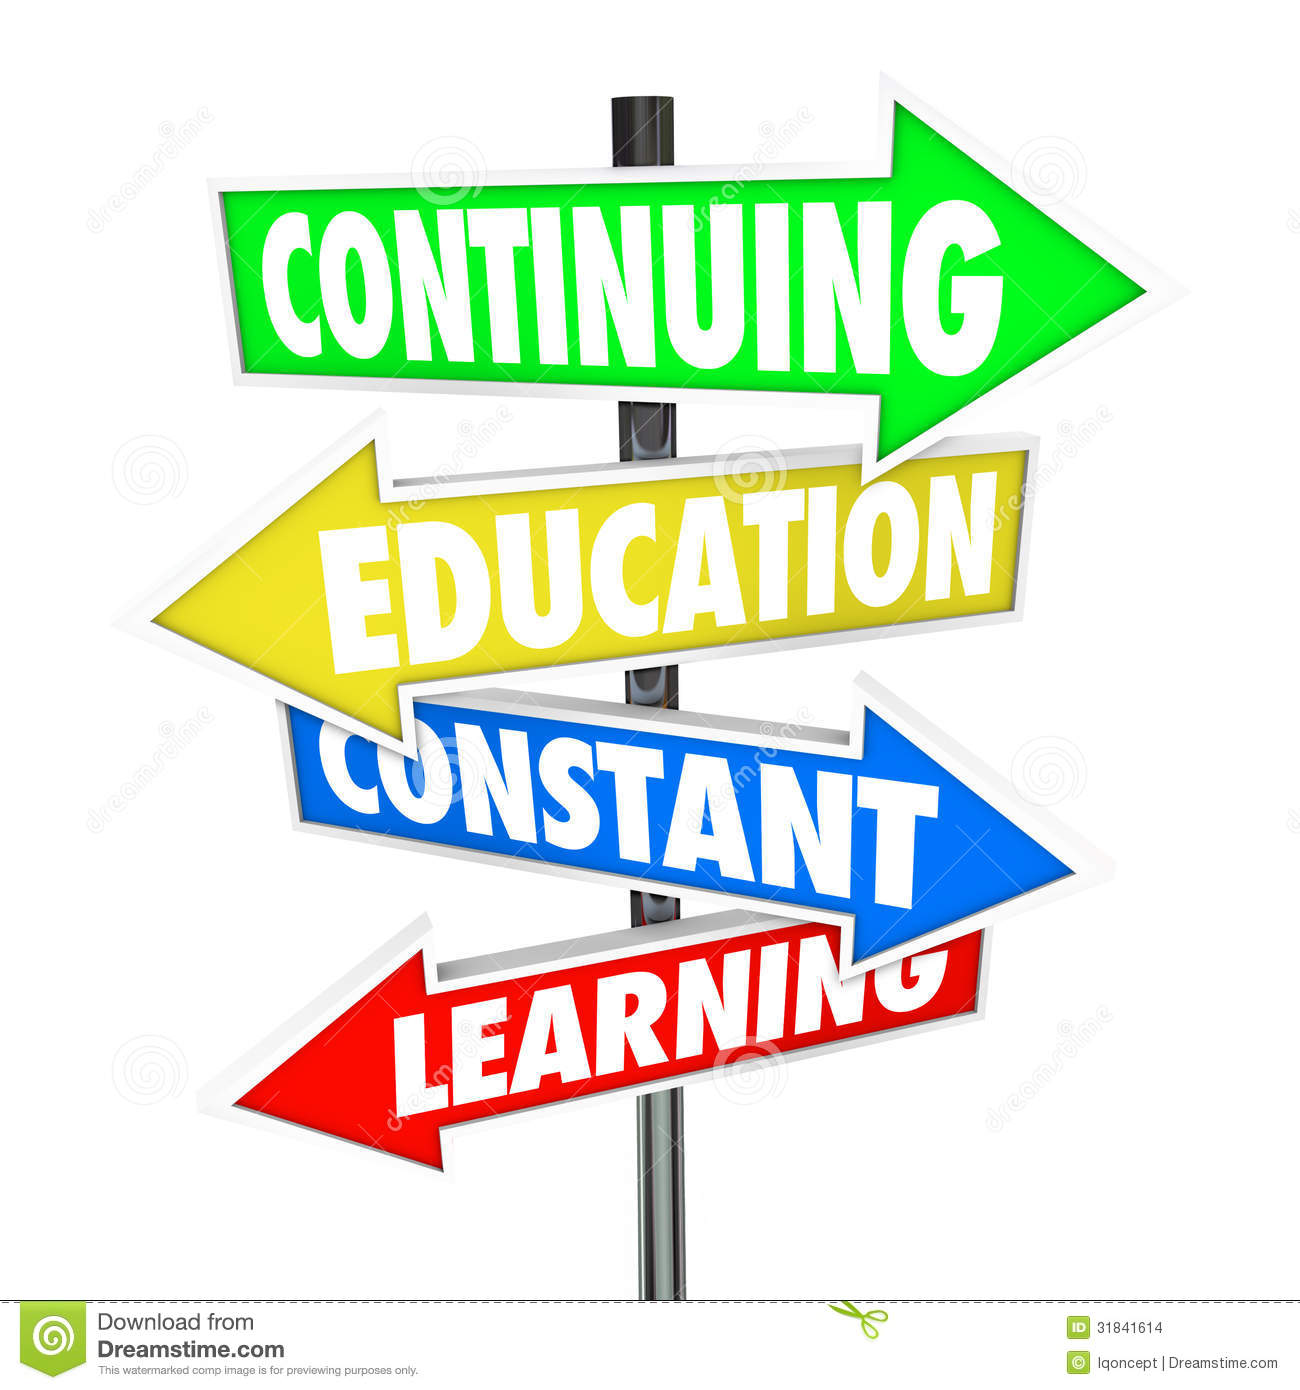 continuing-education-constant-learning-street-signs-words-four-colorful-road-to-illustrate-importance-school-31841614.jpg